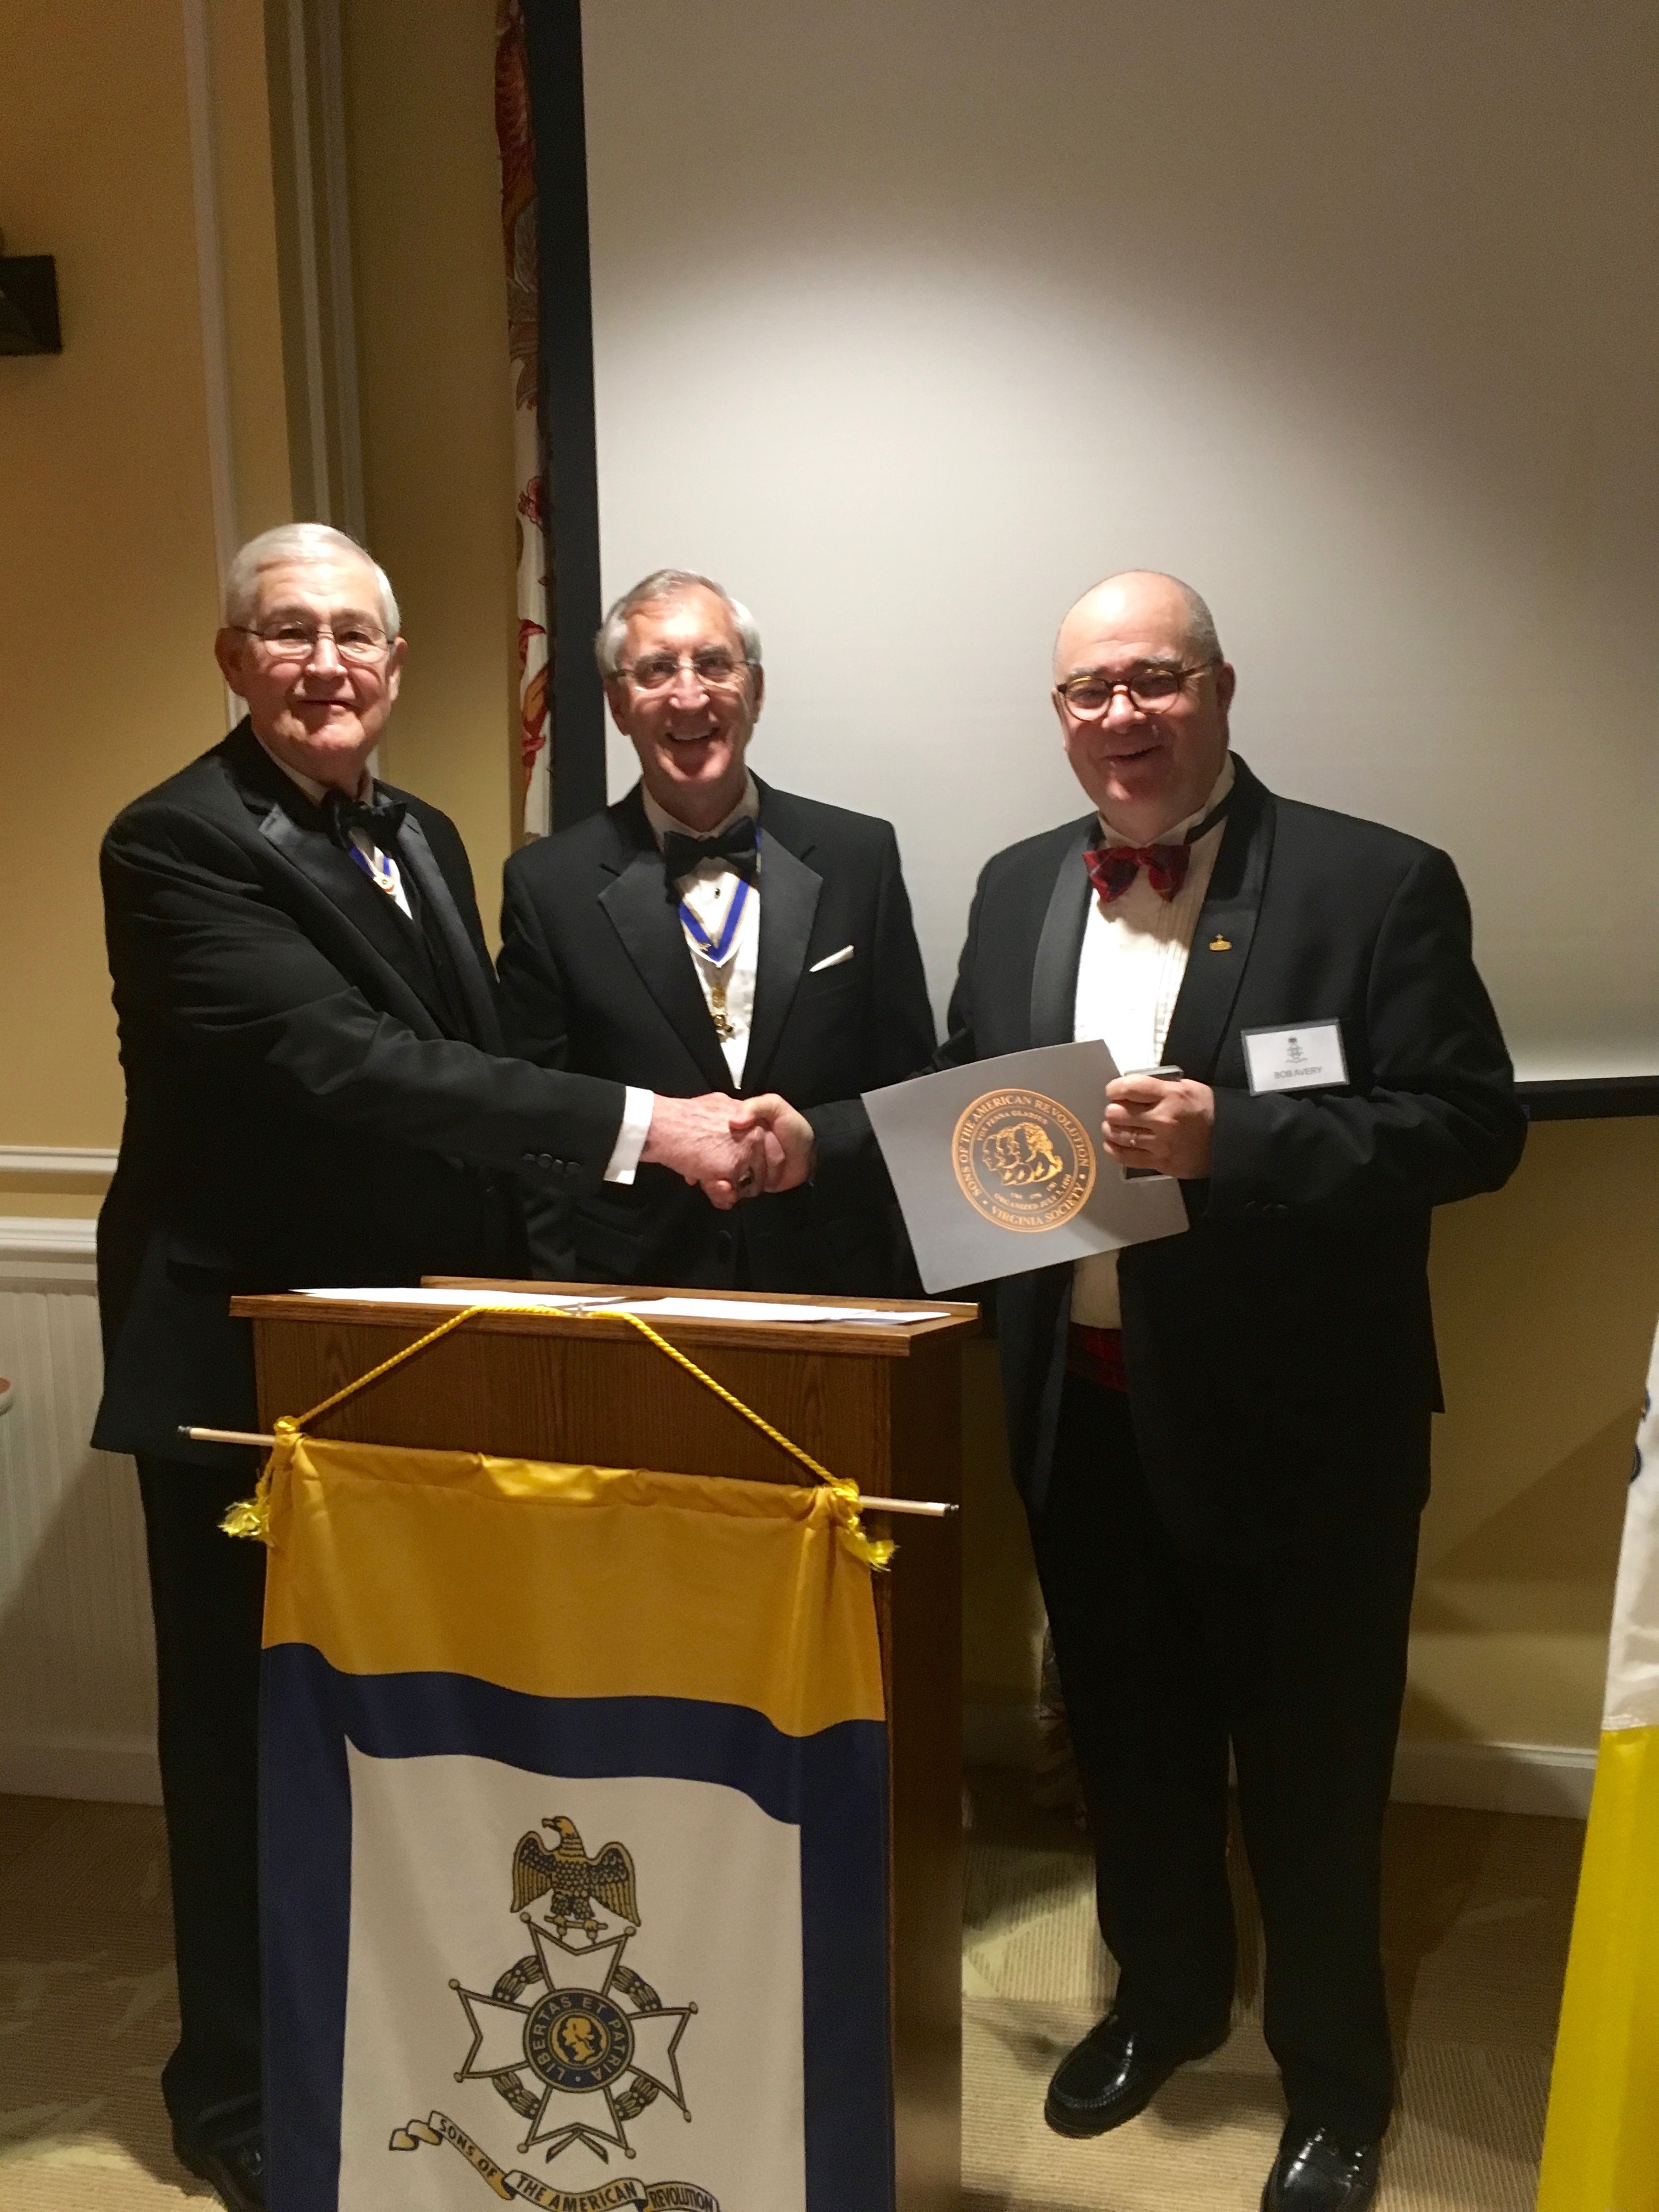 Outgoing Chapter Registrar Bob Avery is awarded the Distinguished Service Medal and Certificate by President Ken Hawkins and Past President Maury Weeks.